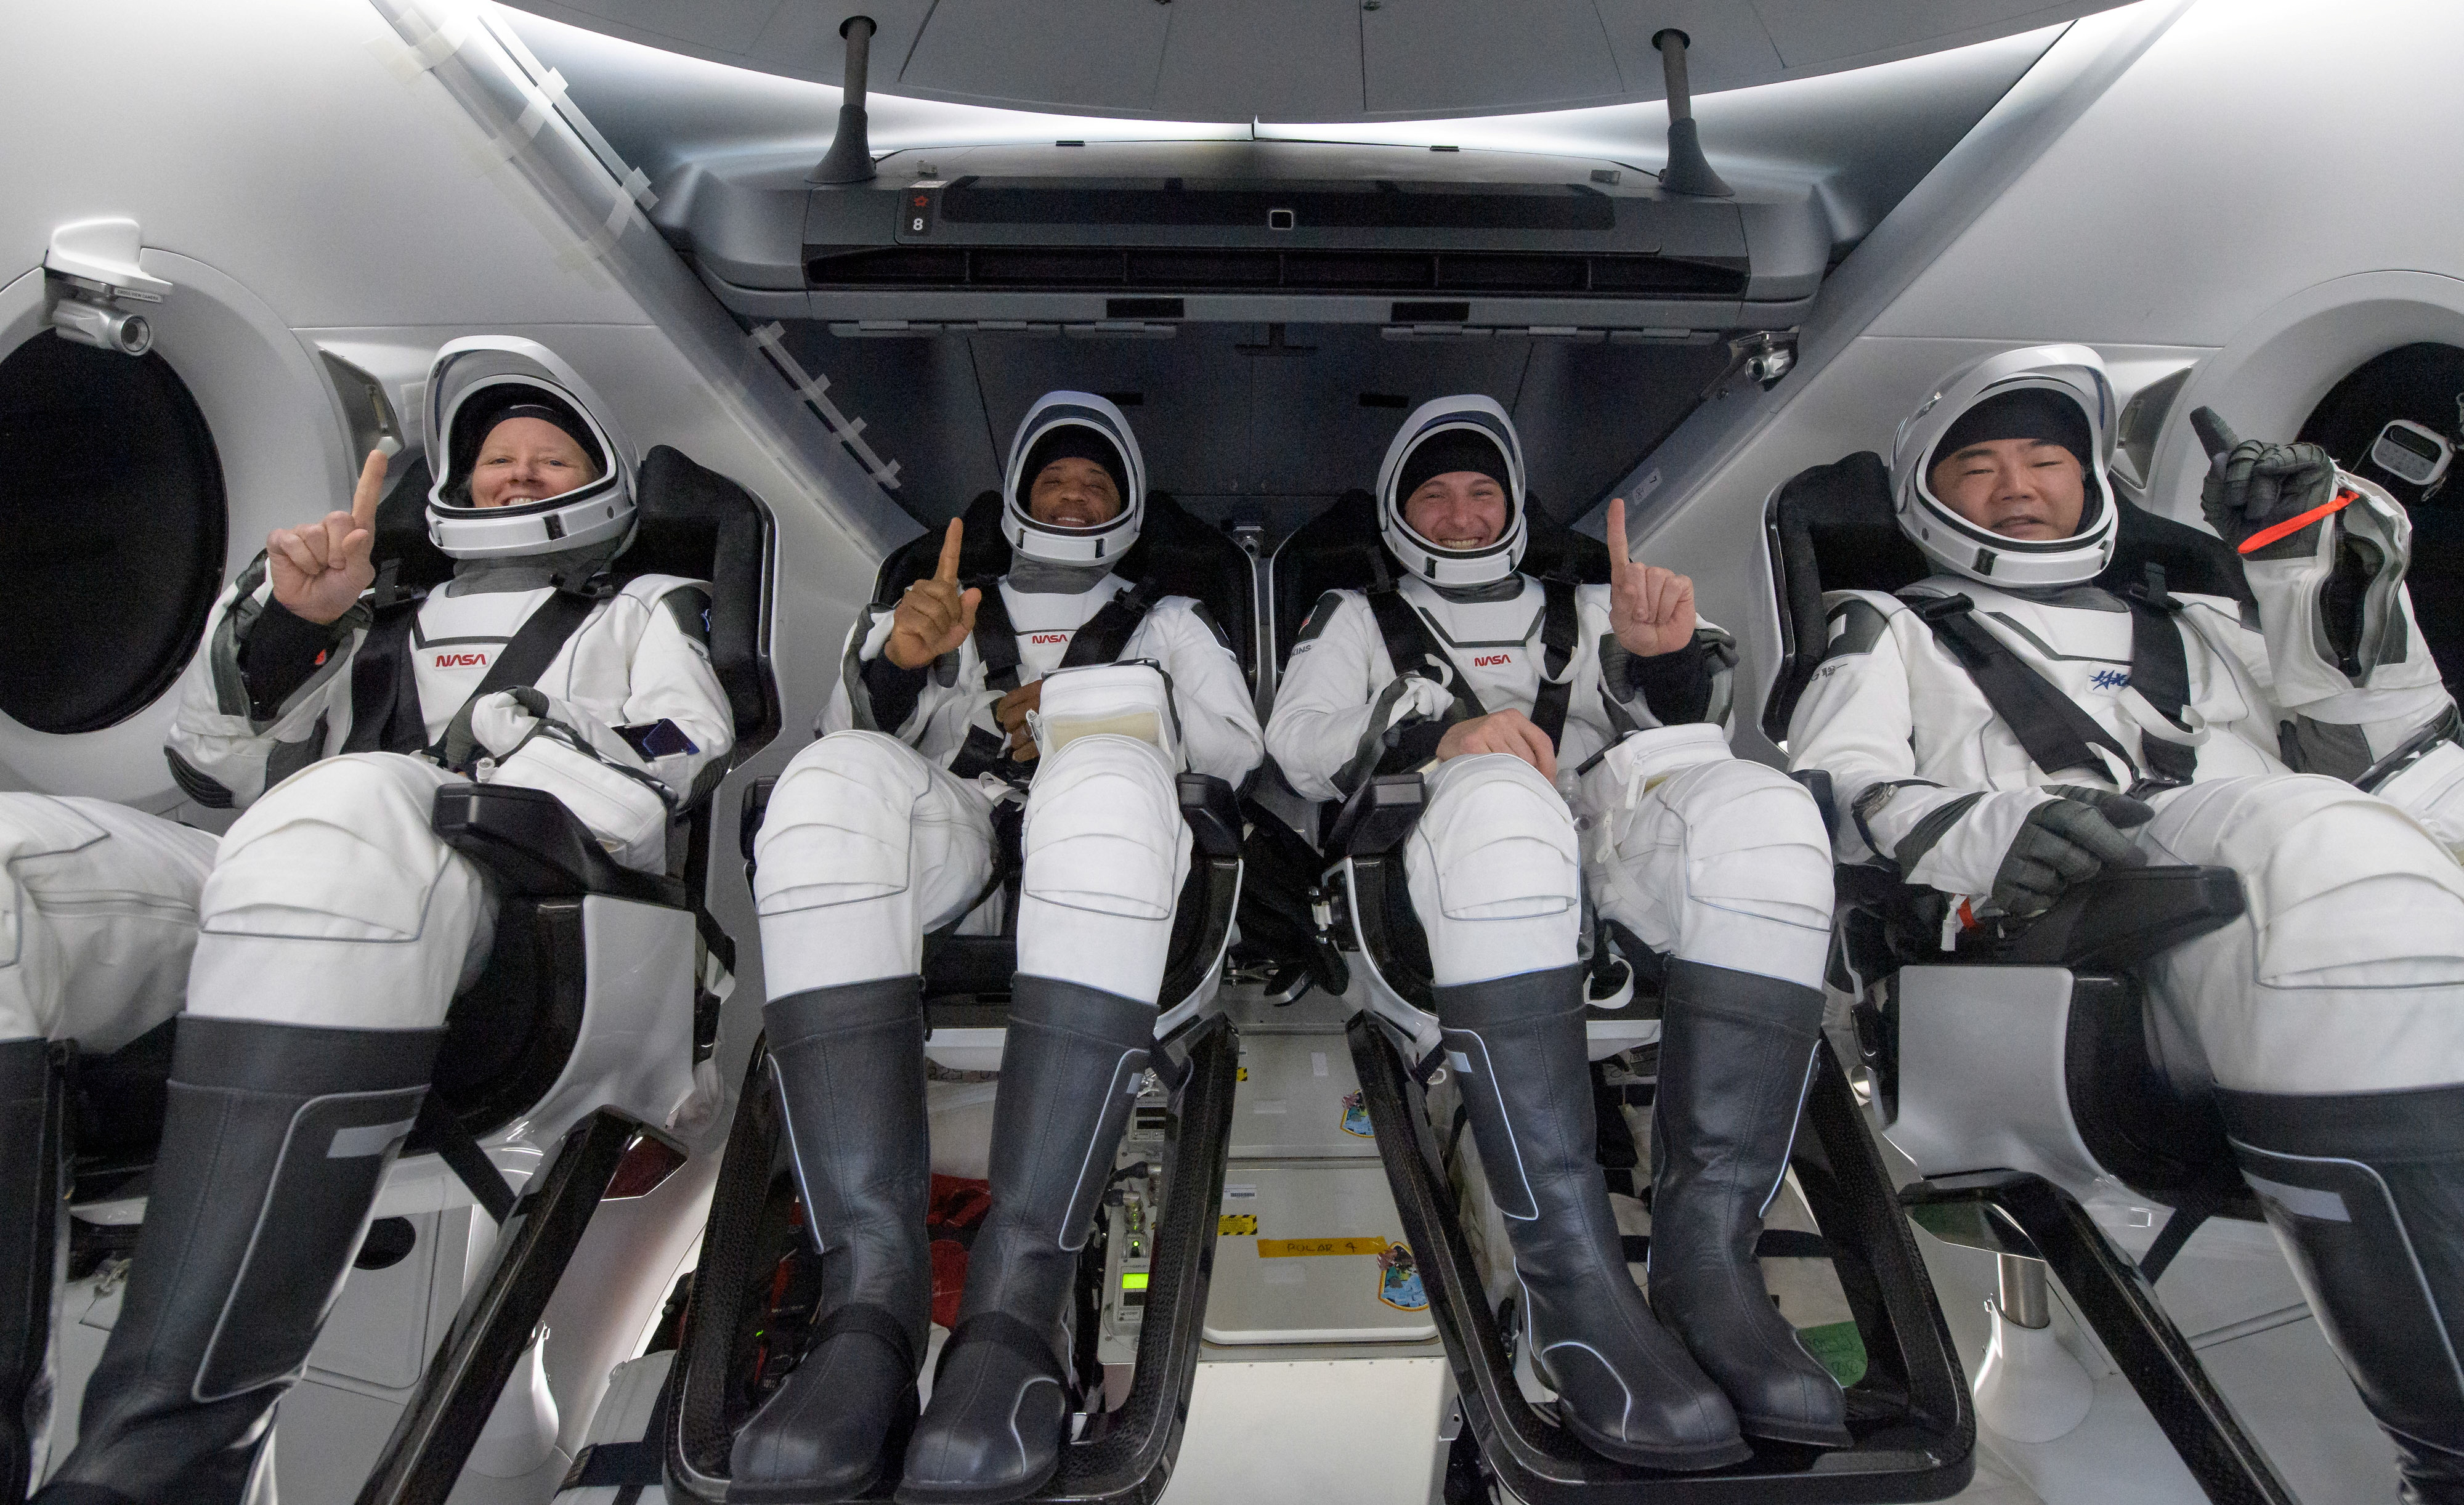 NASA astronauts Shannon Walker, left, Victor Glover, Mike Hopkins, and Japan Aerospace Exploration Agency (JAXA) astronaut Soichi Noguchi react inside the SpaceX Crew Dragon Resilience spacecraft onboard the SpaceX GO Navigator recovery ship shortly after having landed in the Gulf of Mexico off the coast of Panama City, Florida, U.S. May 2, 2021. NASA/Bill Ingalls/Handout via REUTERS